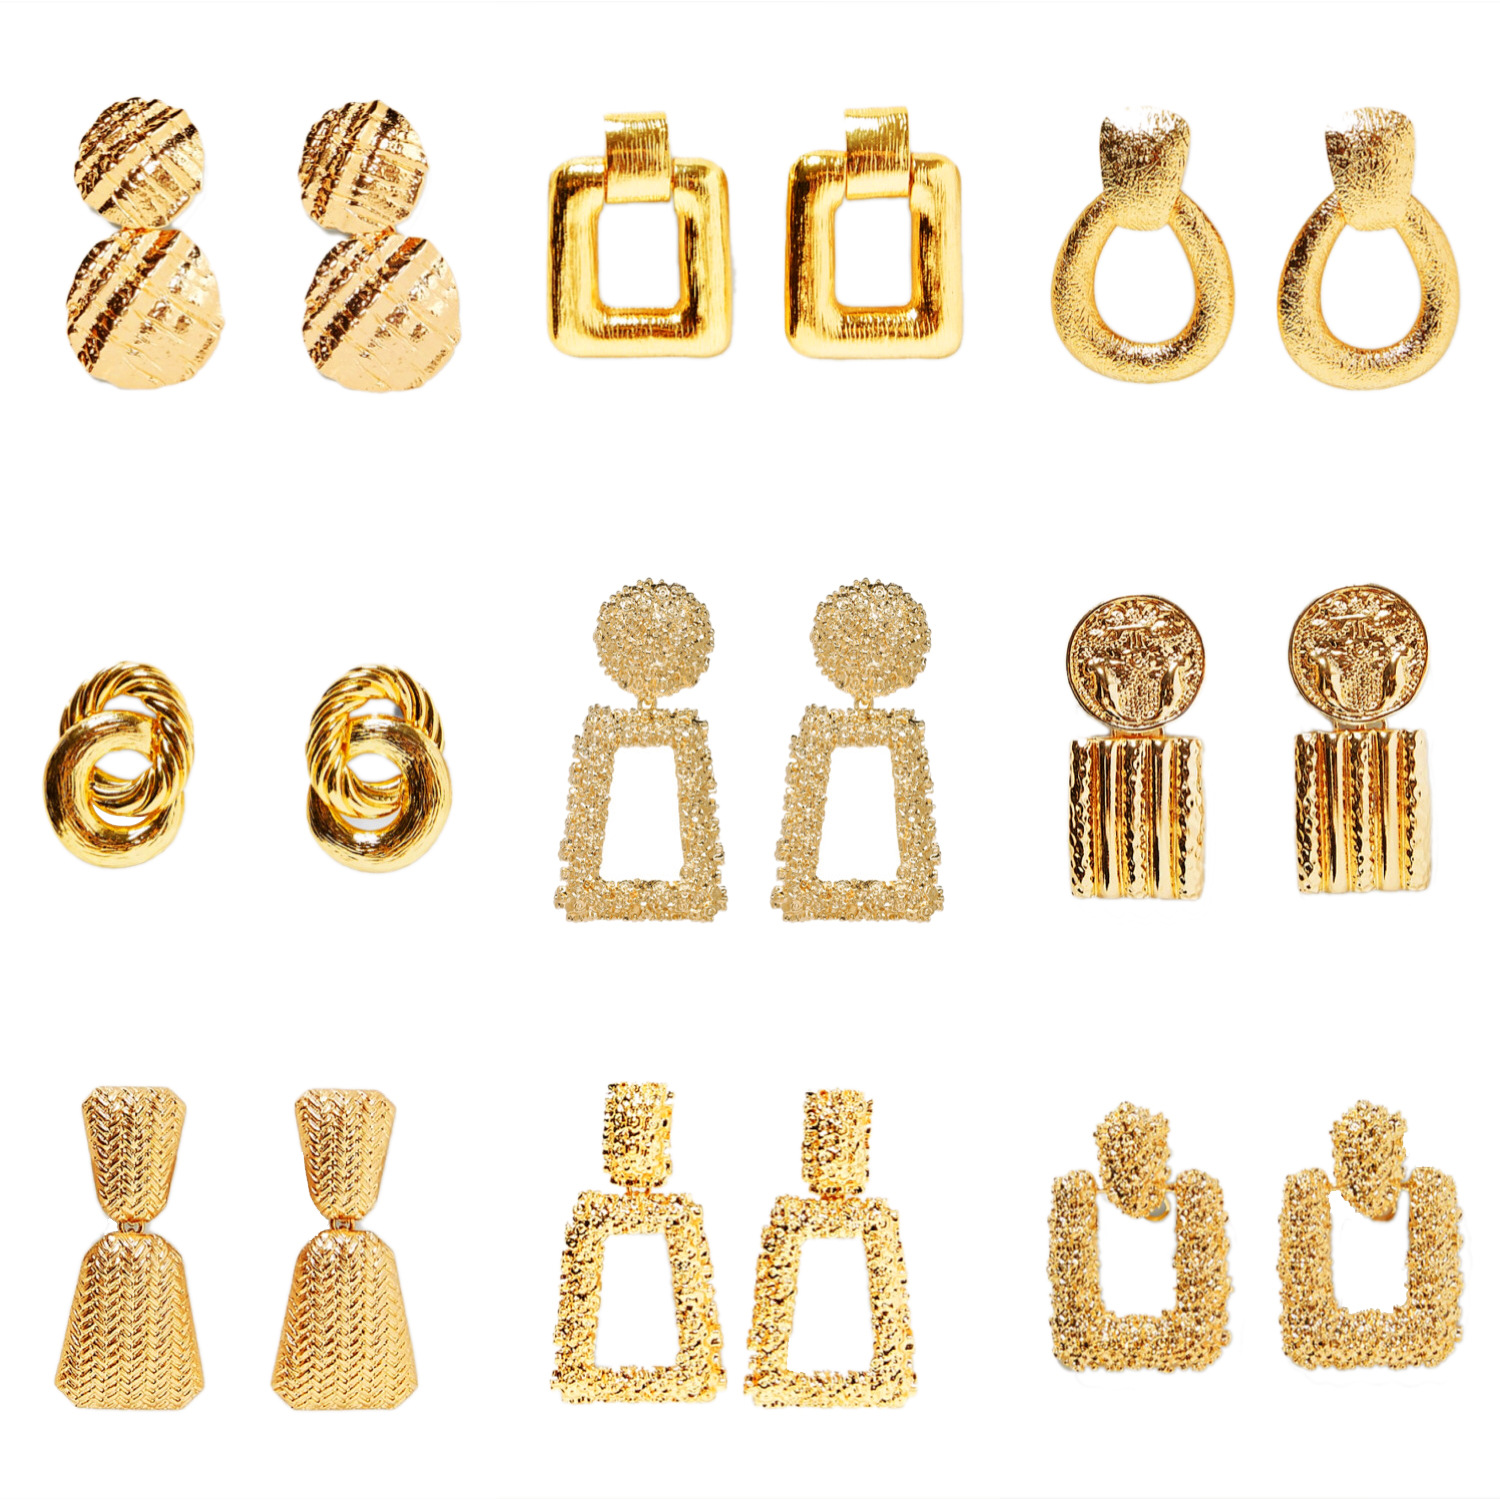 New style simple earrings with gold color alloy circle square geometric tassel earrings retro Earrings for women wholesale